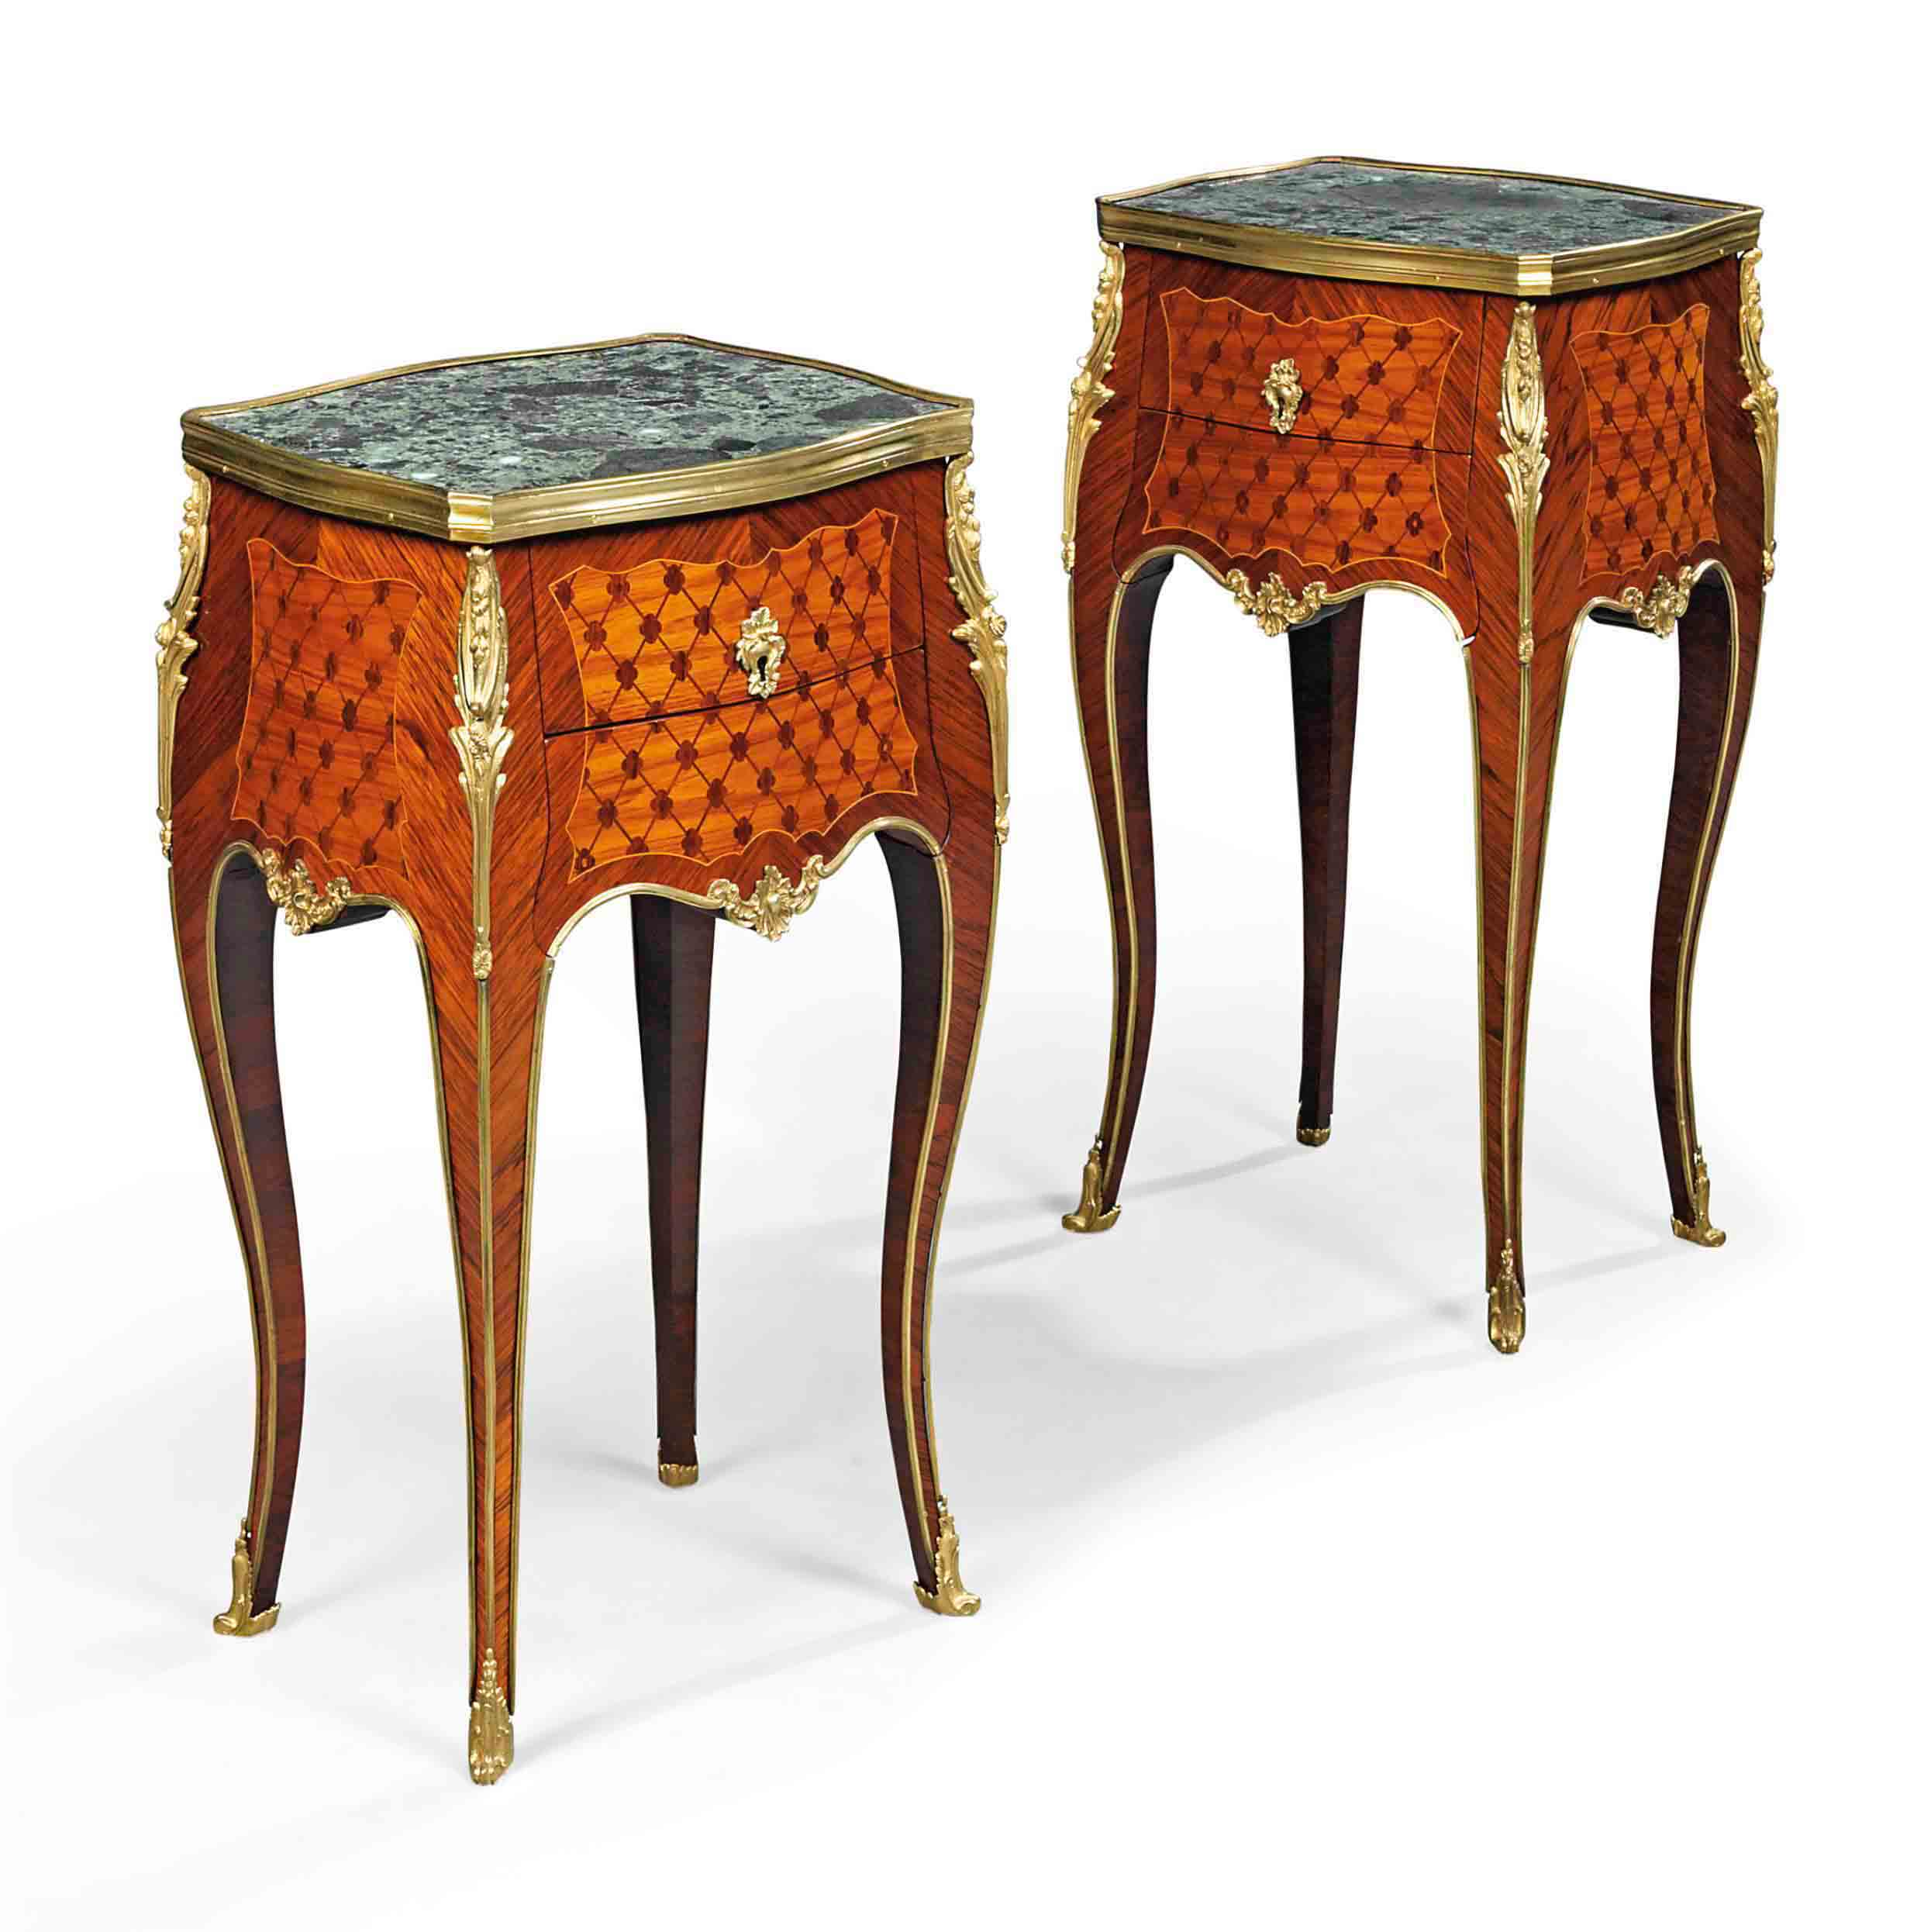 A PAIR OF FRENCH ORMOLU-MOUNTED TULIPWOOD AND KINGWOOD PARQUETRY TABLES DE NUIT